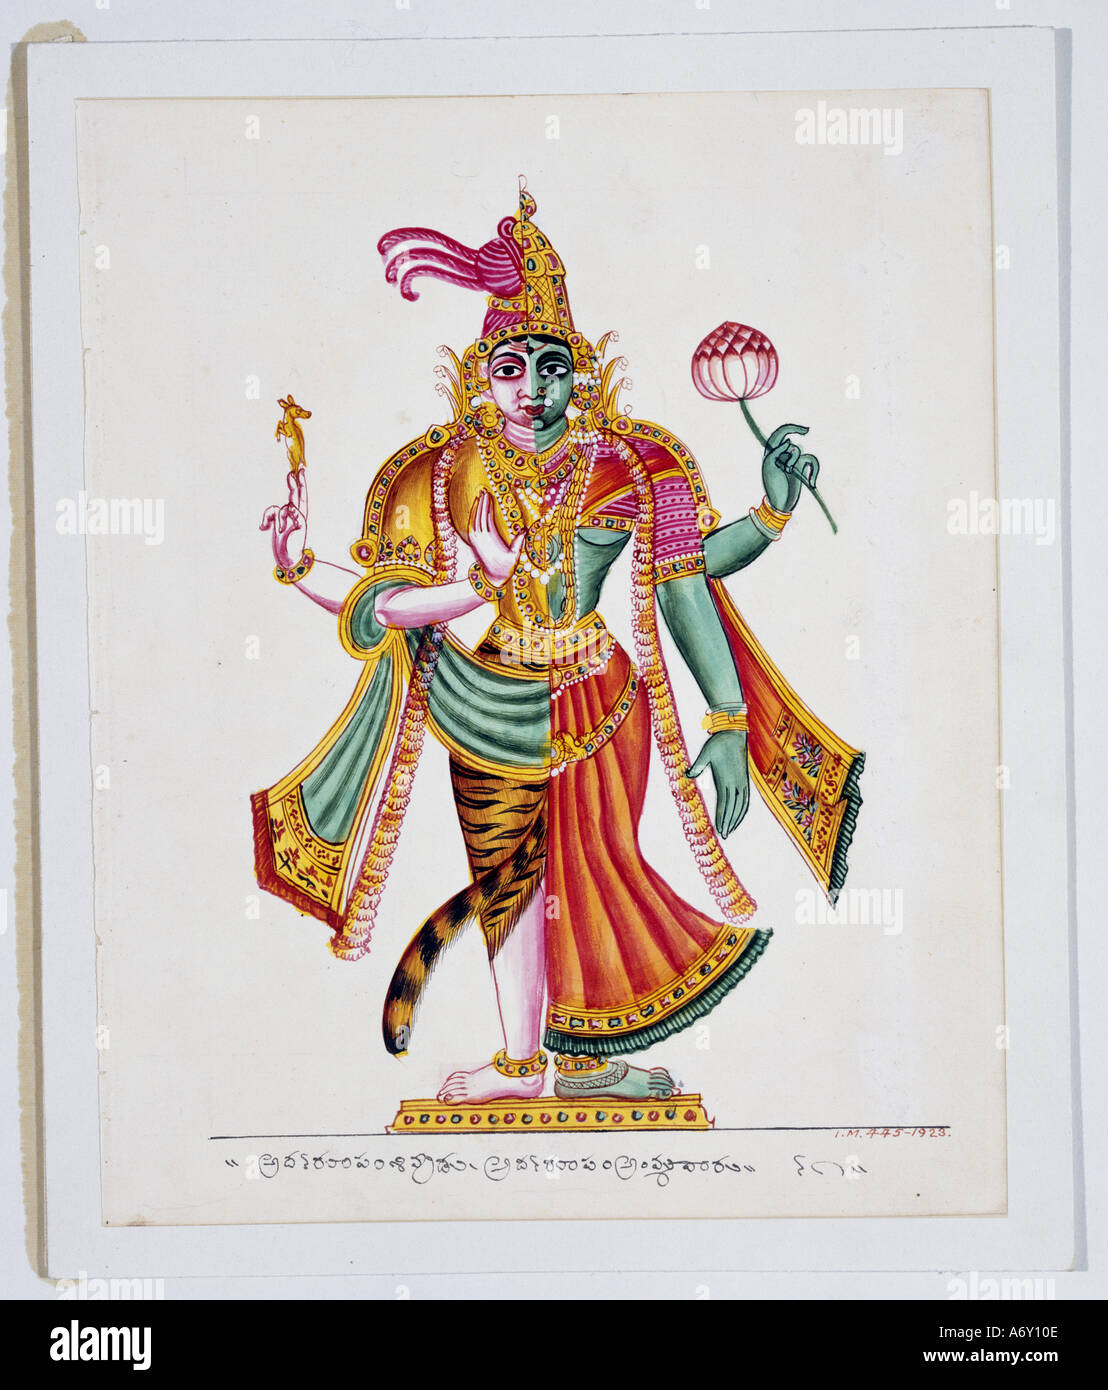 Ardhanari, the Combination of Shiva With Parvati. India, early 19th century. - Stock Image